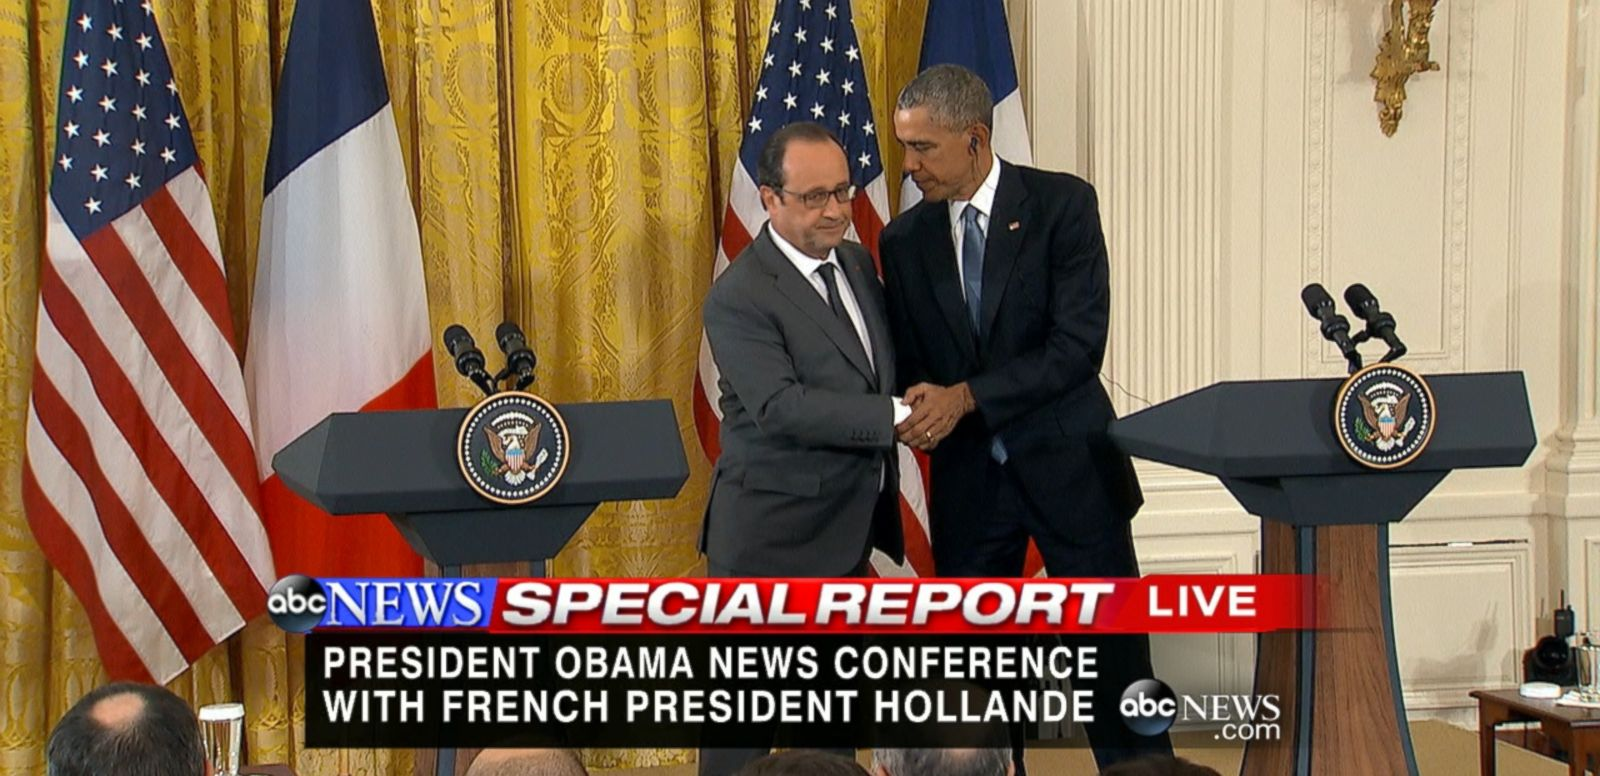 VIDEO: The president did not announce any major shifts in strategy in light of the deadly terrorist attack in Paris.